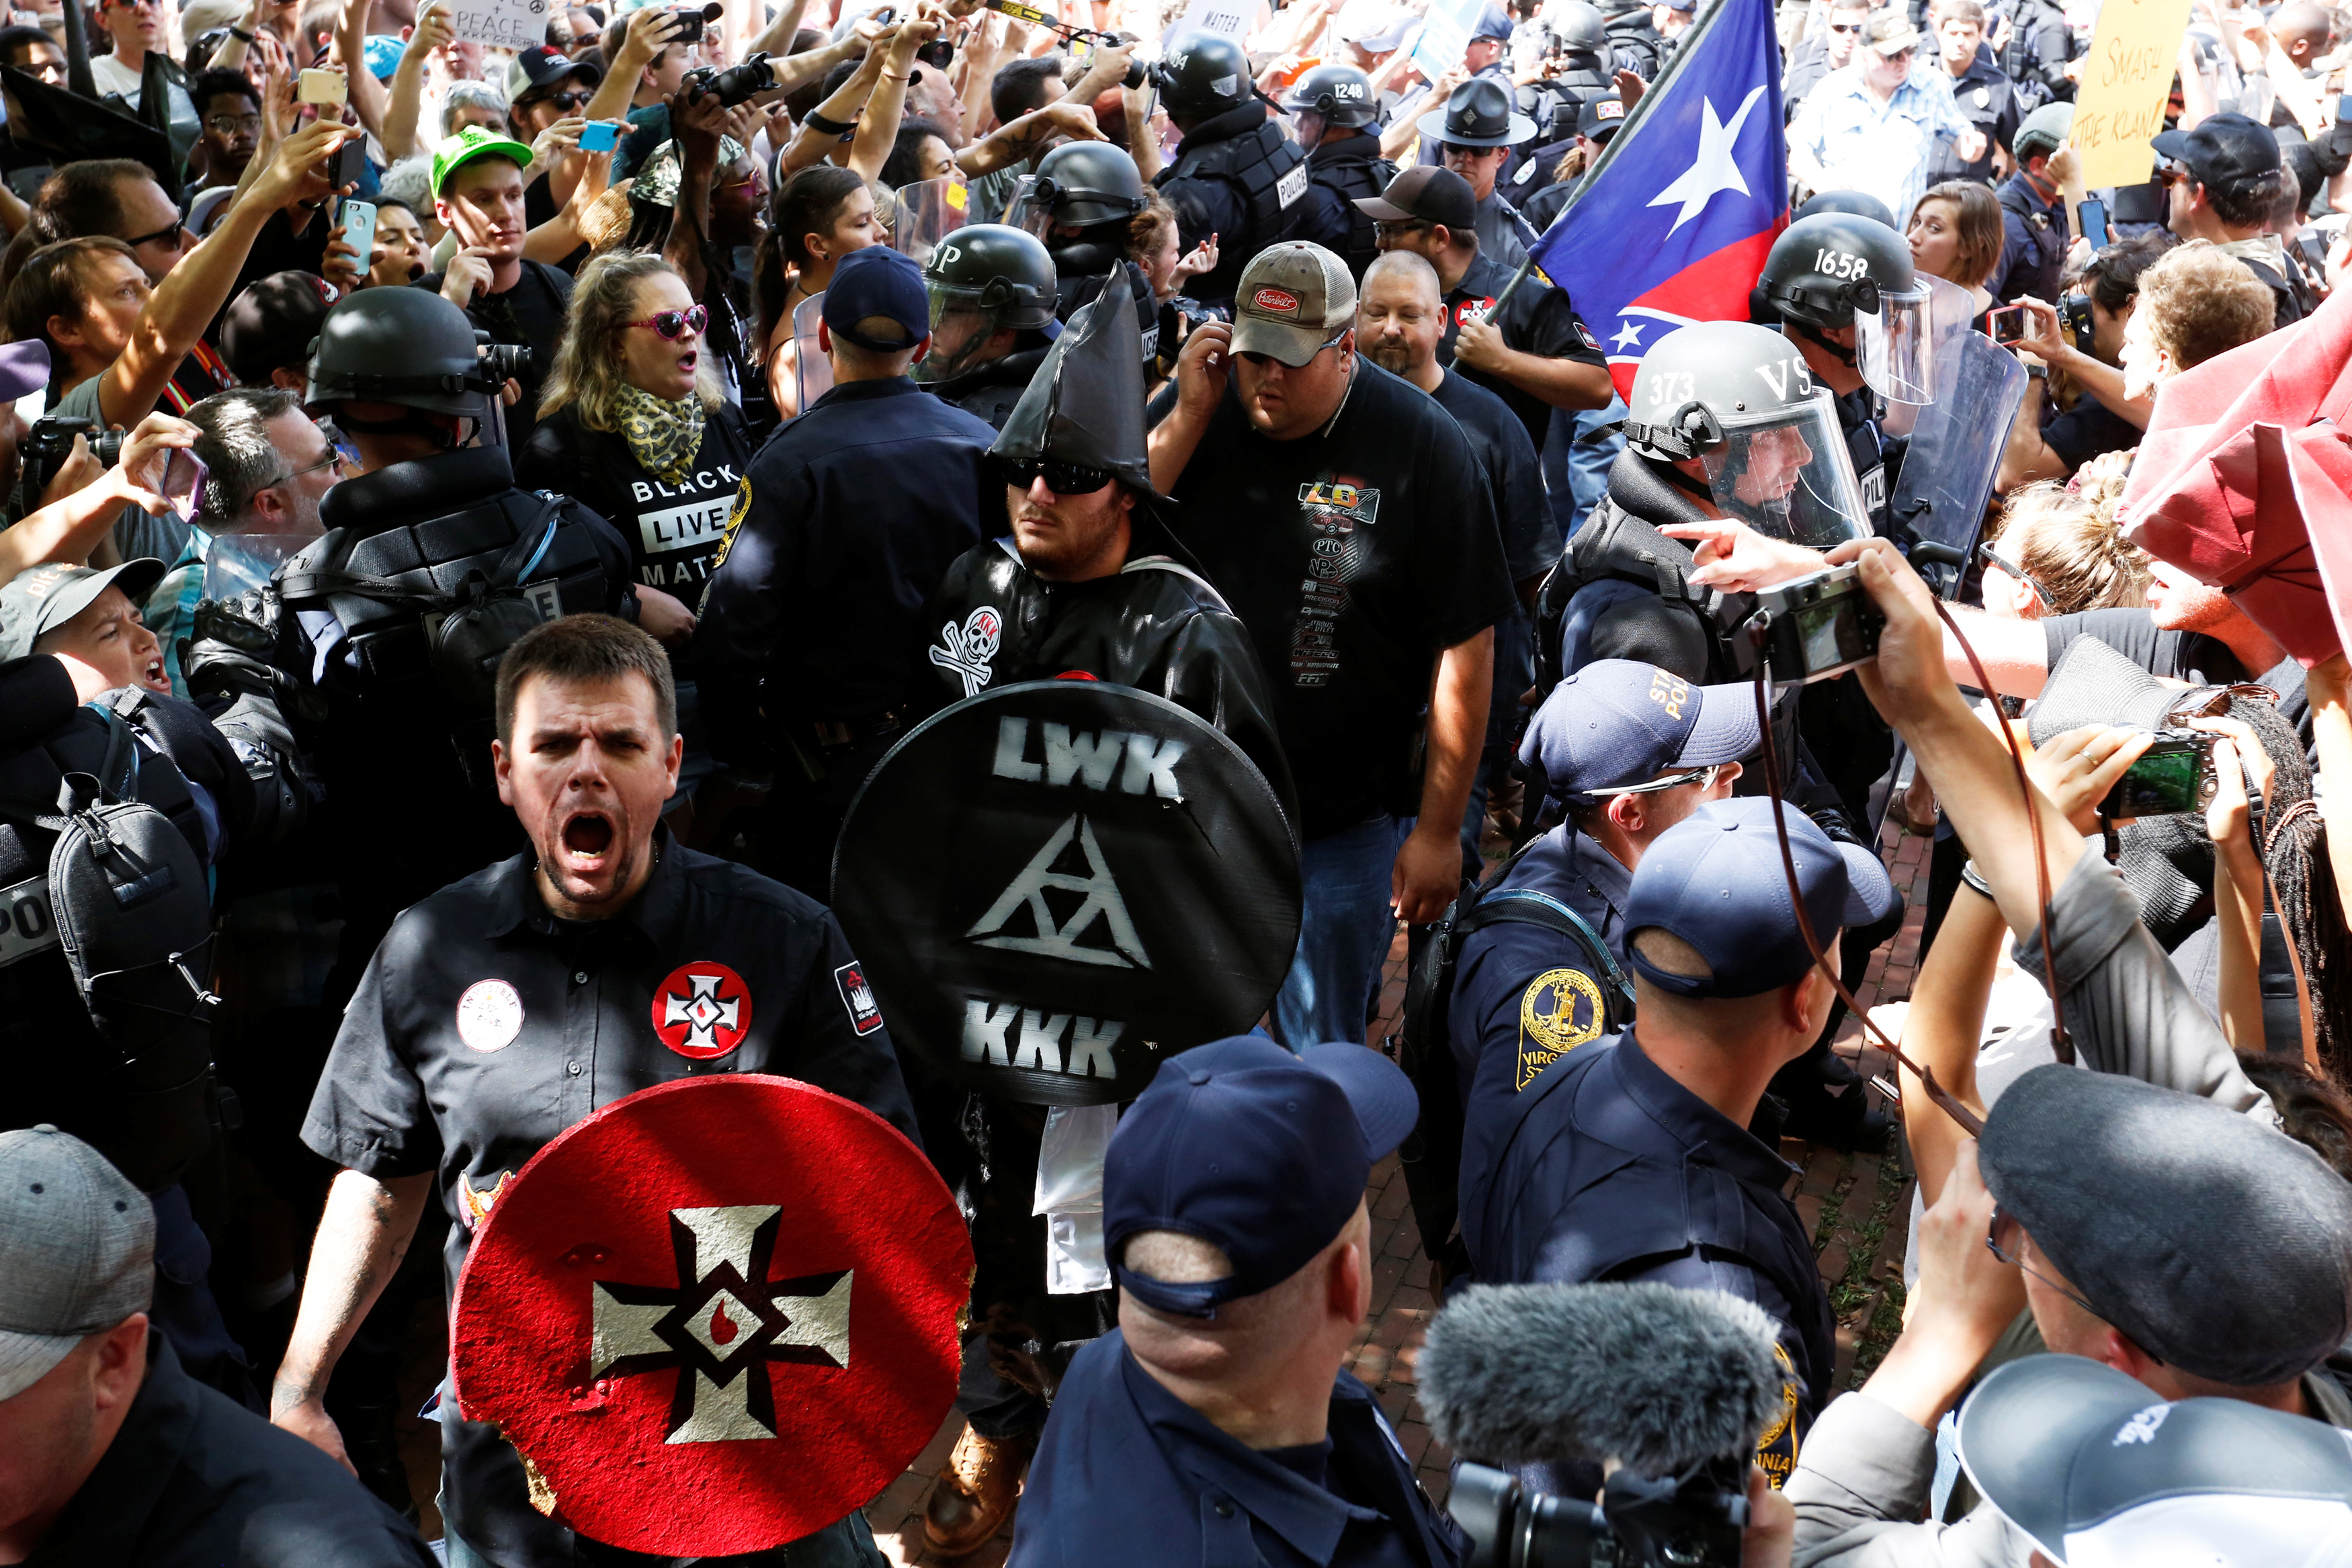 Riot police protect members of the Ku Klux Klan from counter-protesters as they arrive to rally in opposition to city proposals to remove or make changes to Confederate monuments in Charlottesville, Virginia, U.S. July 8, 2017. REUTERS/Jonathan Ernst